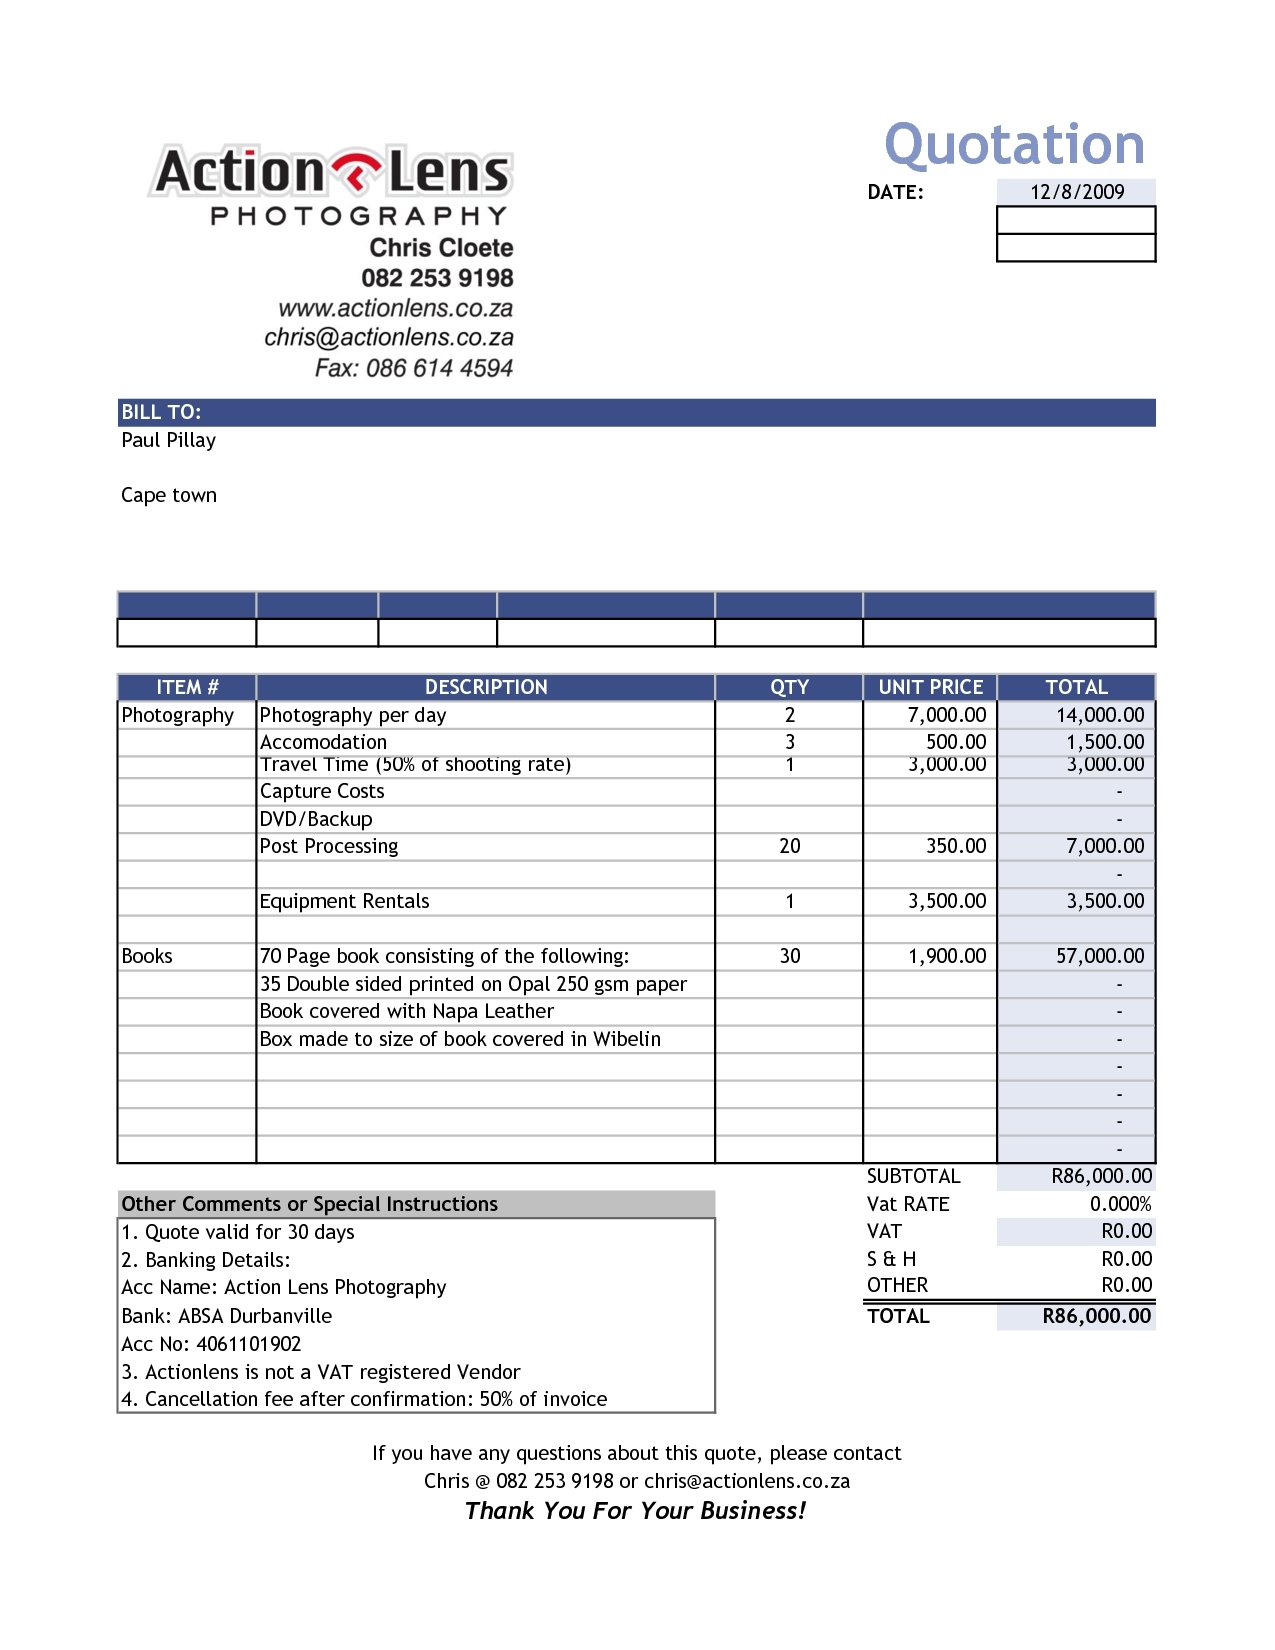 ... Sale Invoice Format Invoice Template Free 2016 Sample Of Sales Invoice  Sales Invoice Format